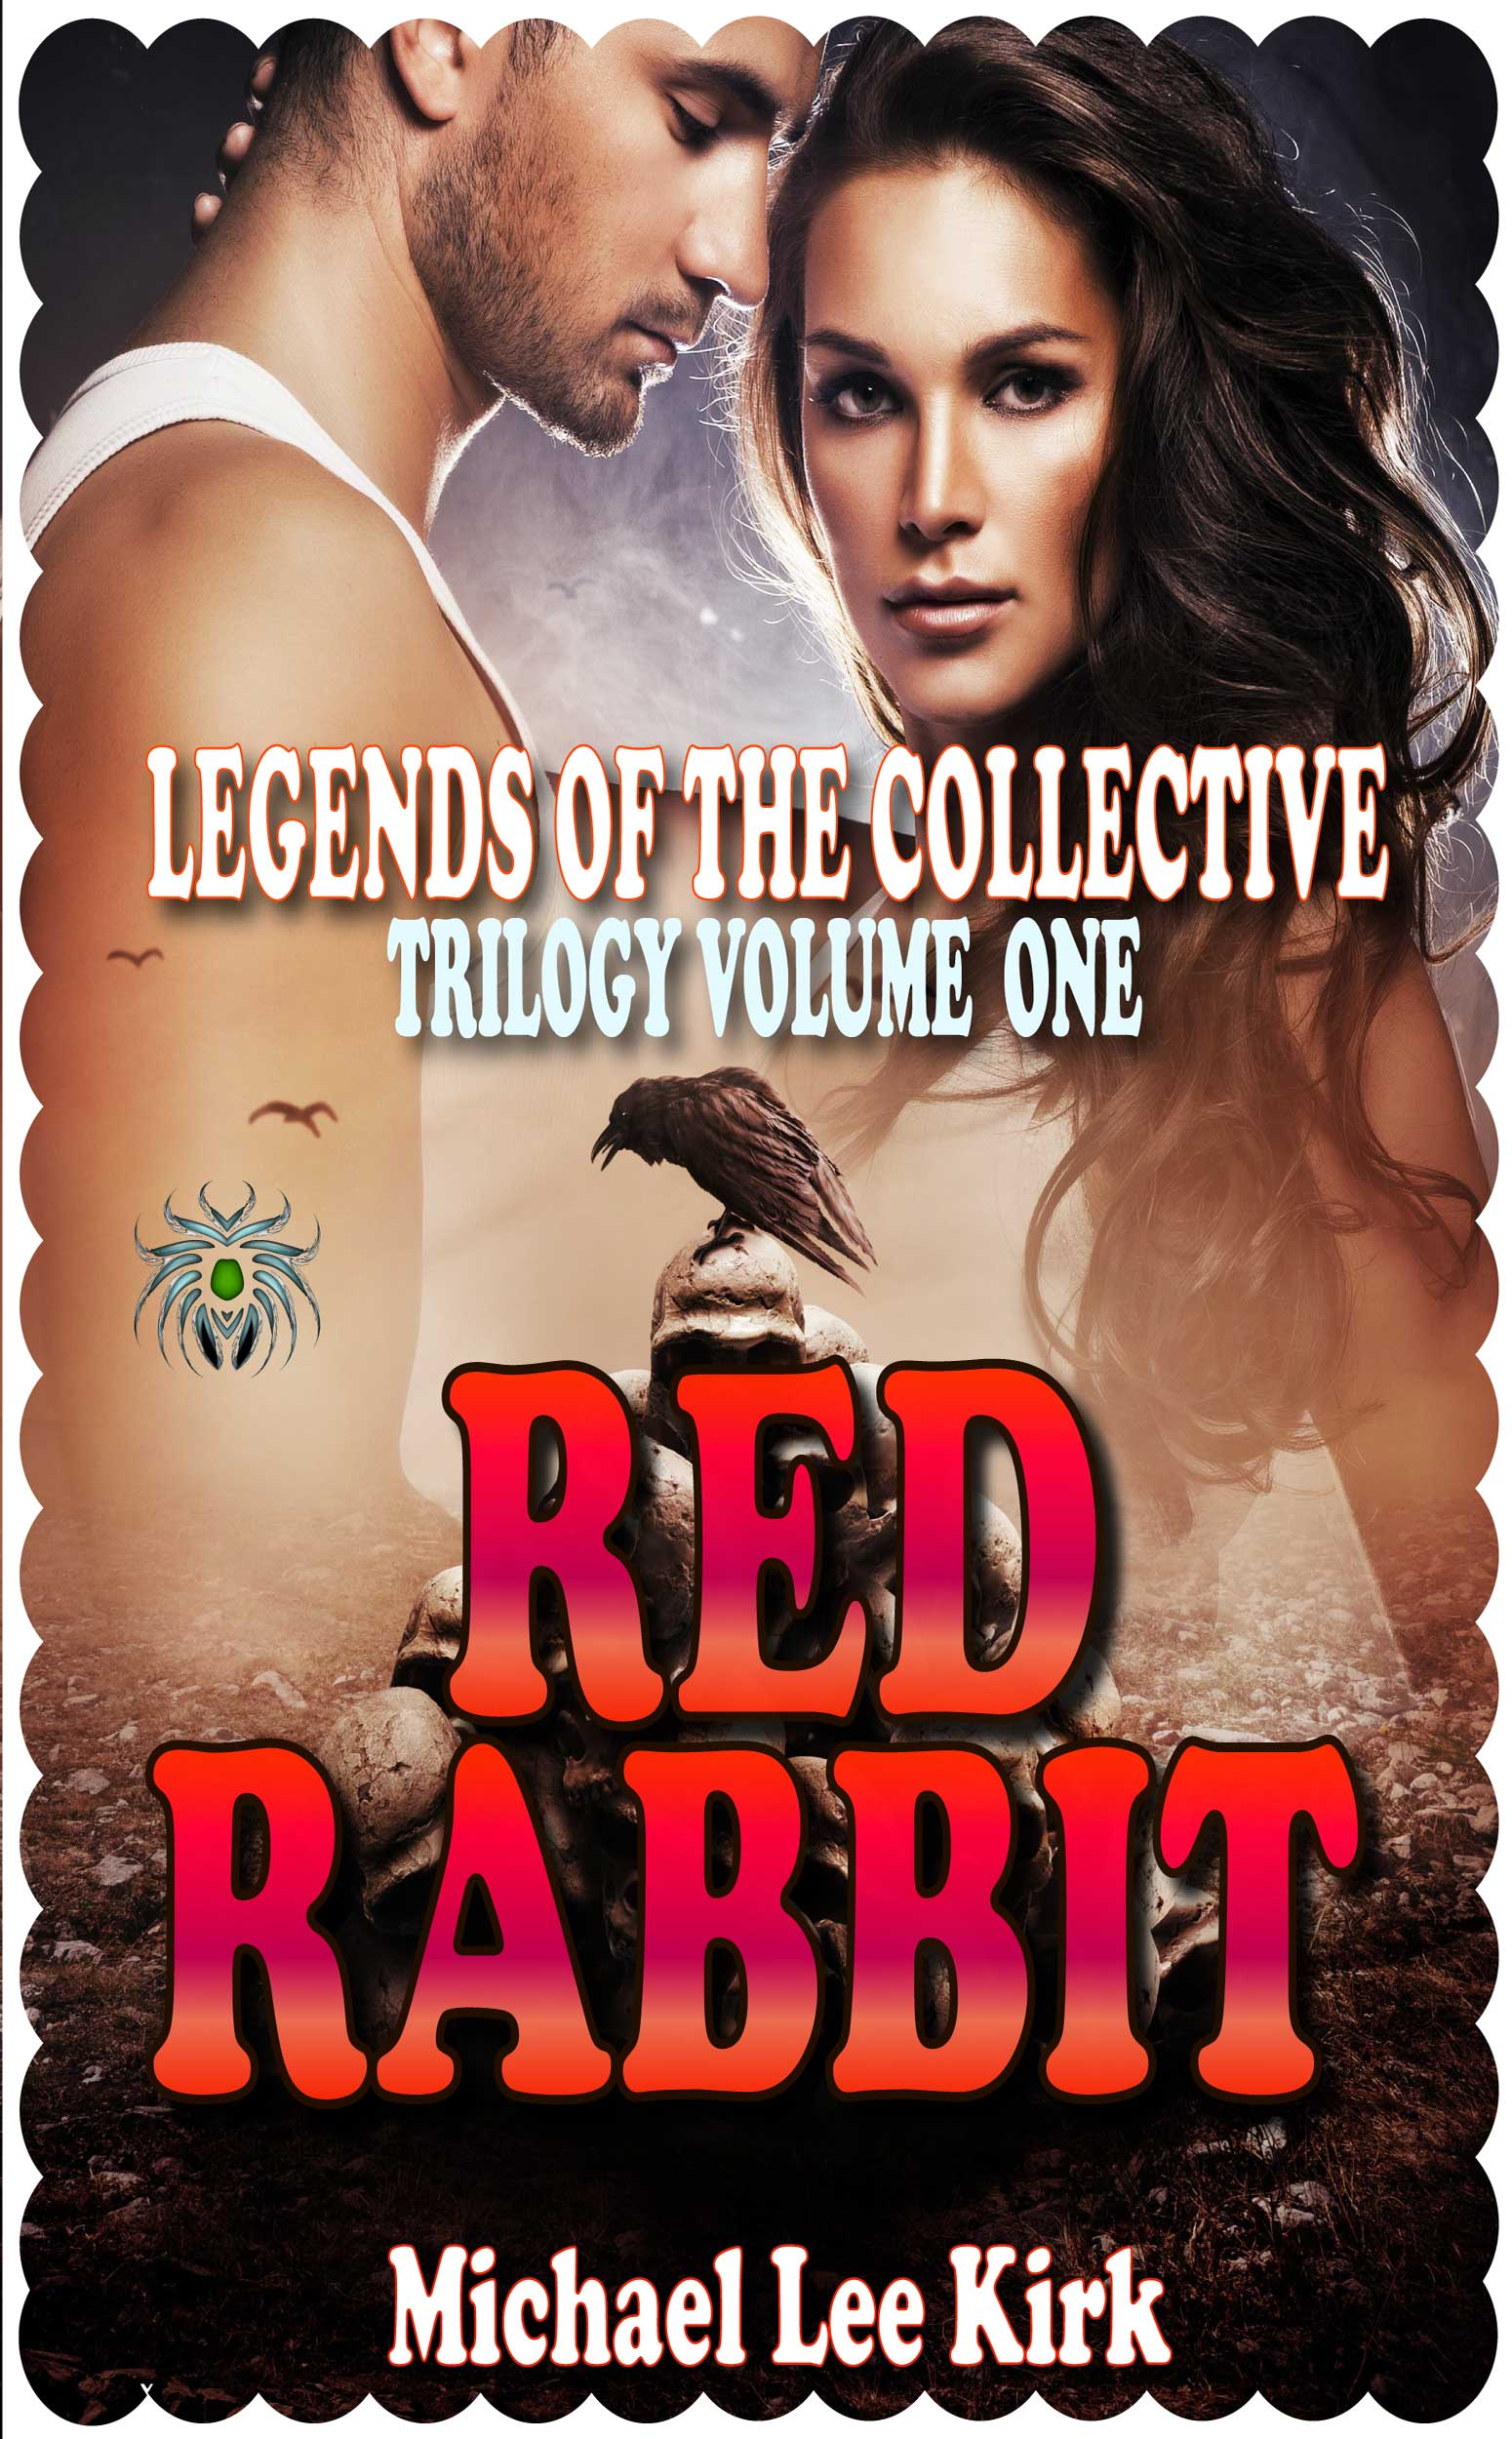 Legends of the Collective: Red Rabbit